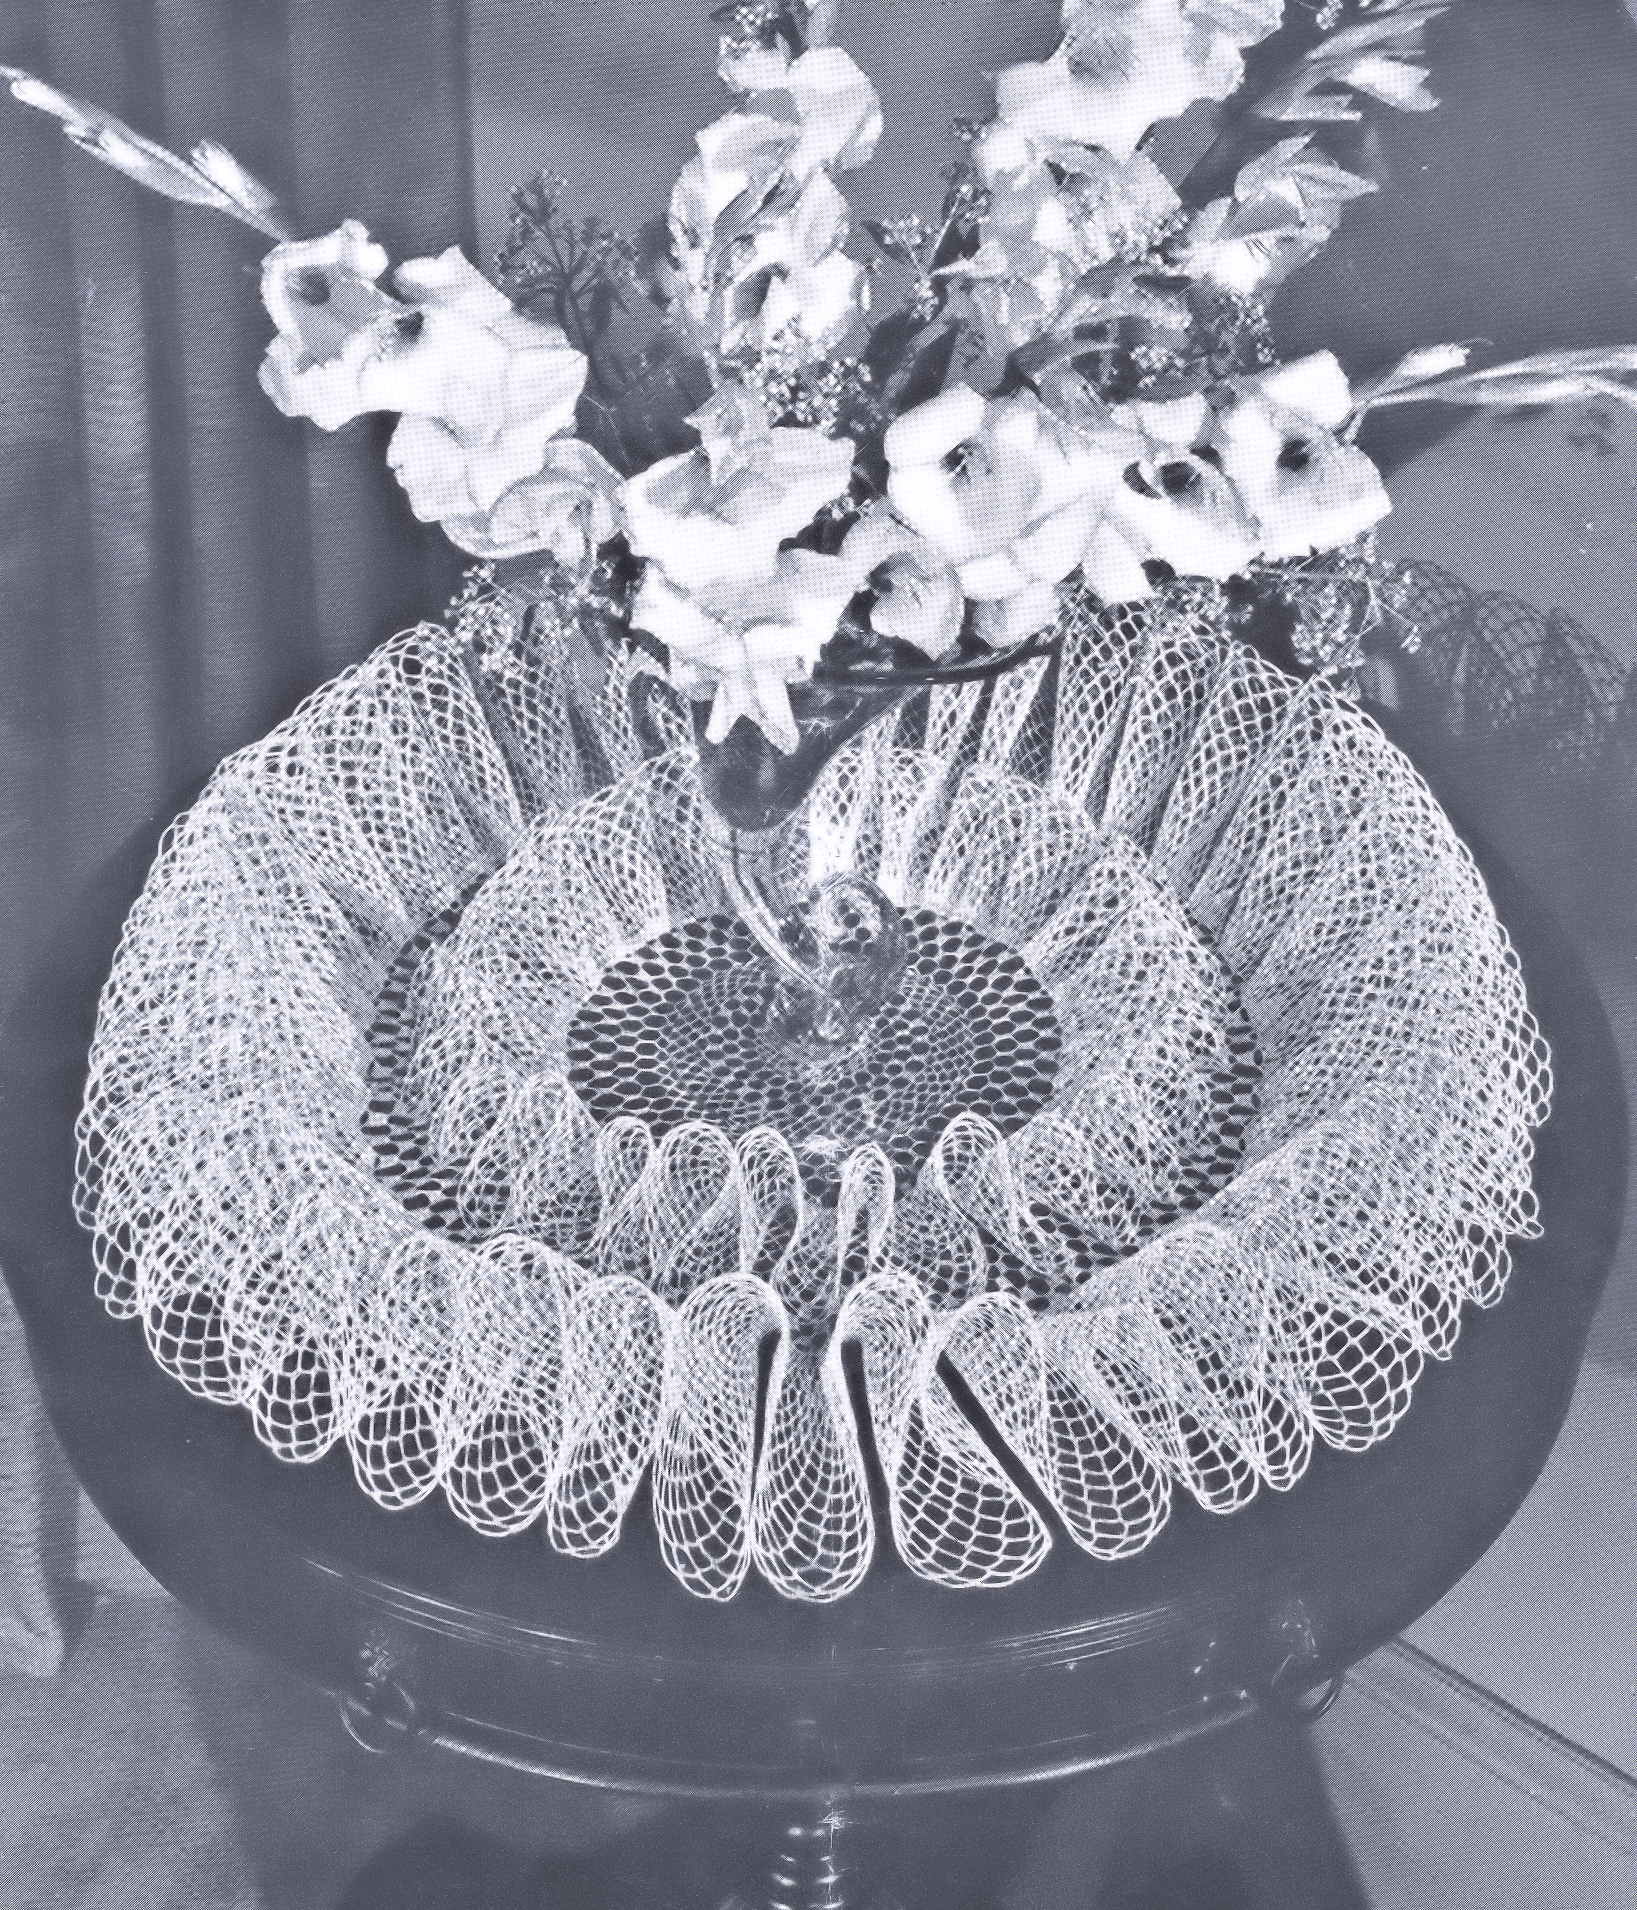 2014 vintage crochet projects free vintage crochet doily patterns free frou frou ruffle doily pattern bankloansurffo Image collections